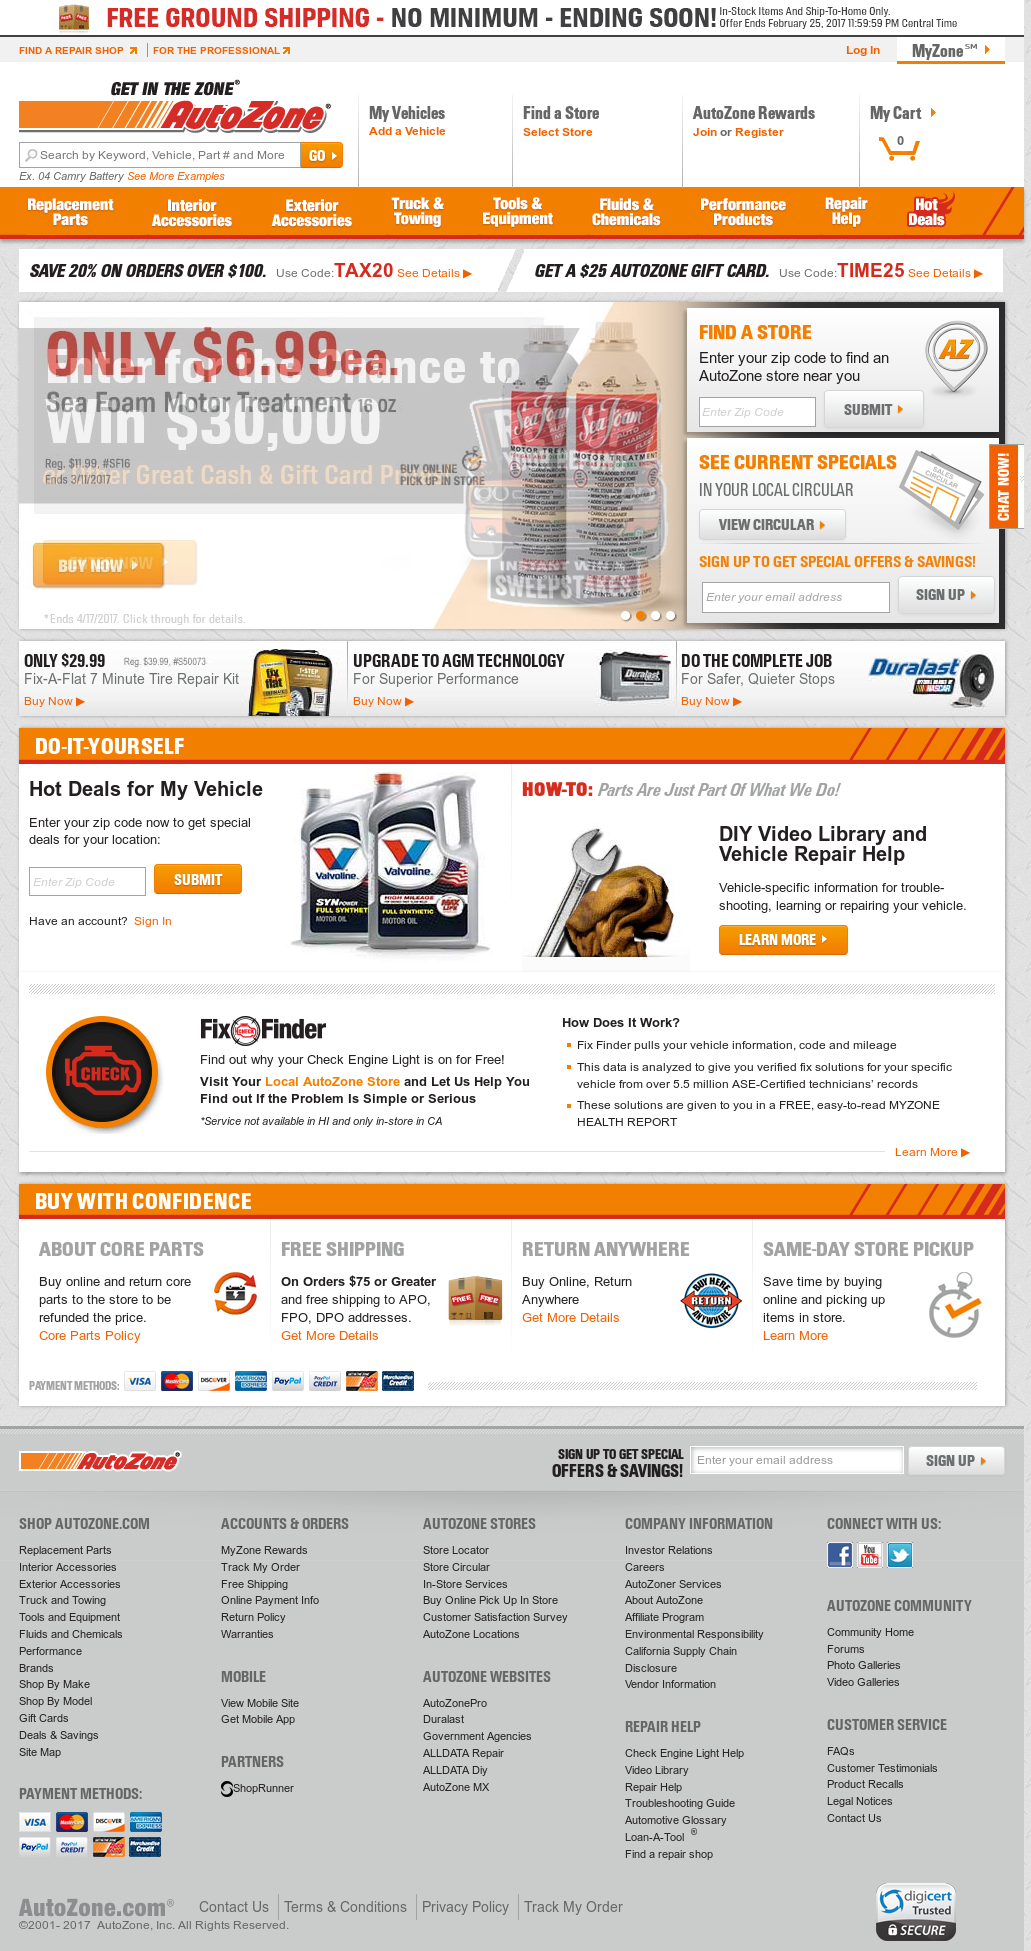 AutoZone Competitors, Revenue and Employees - Owler Company Profile